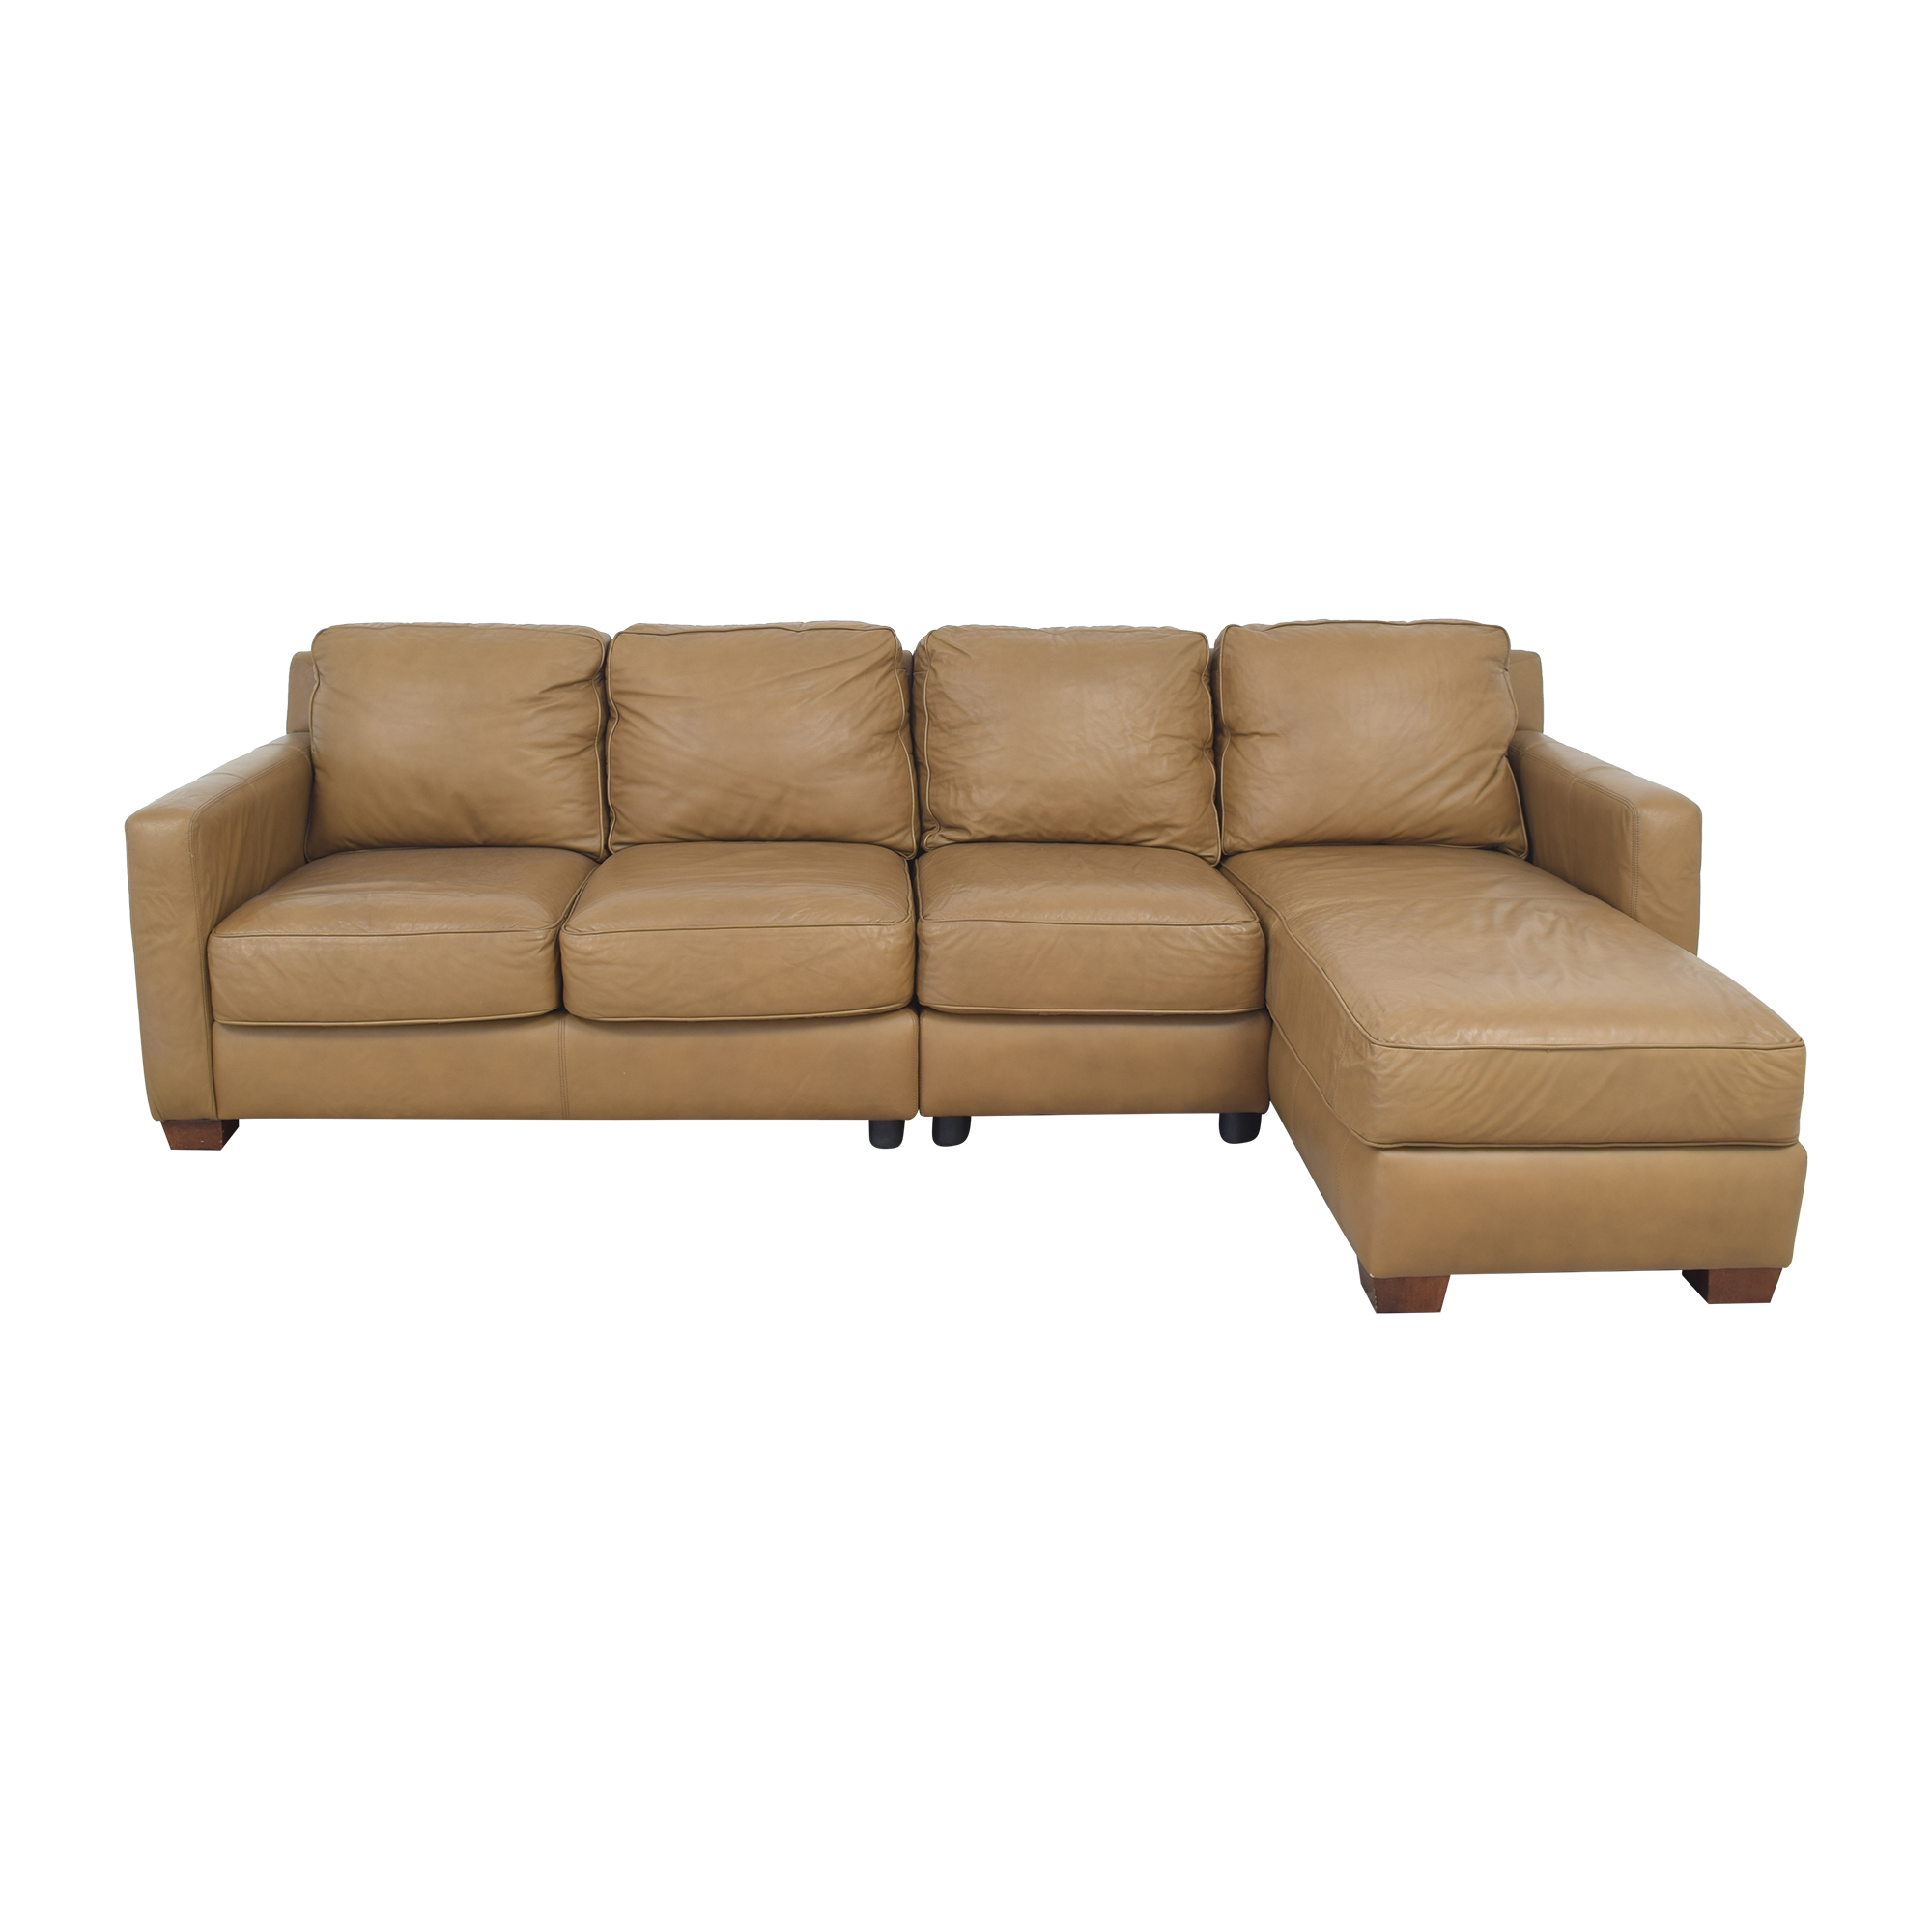 Thomasville Thomasville Chaise Sectional Sofa nj